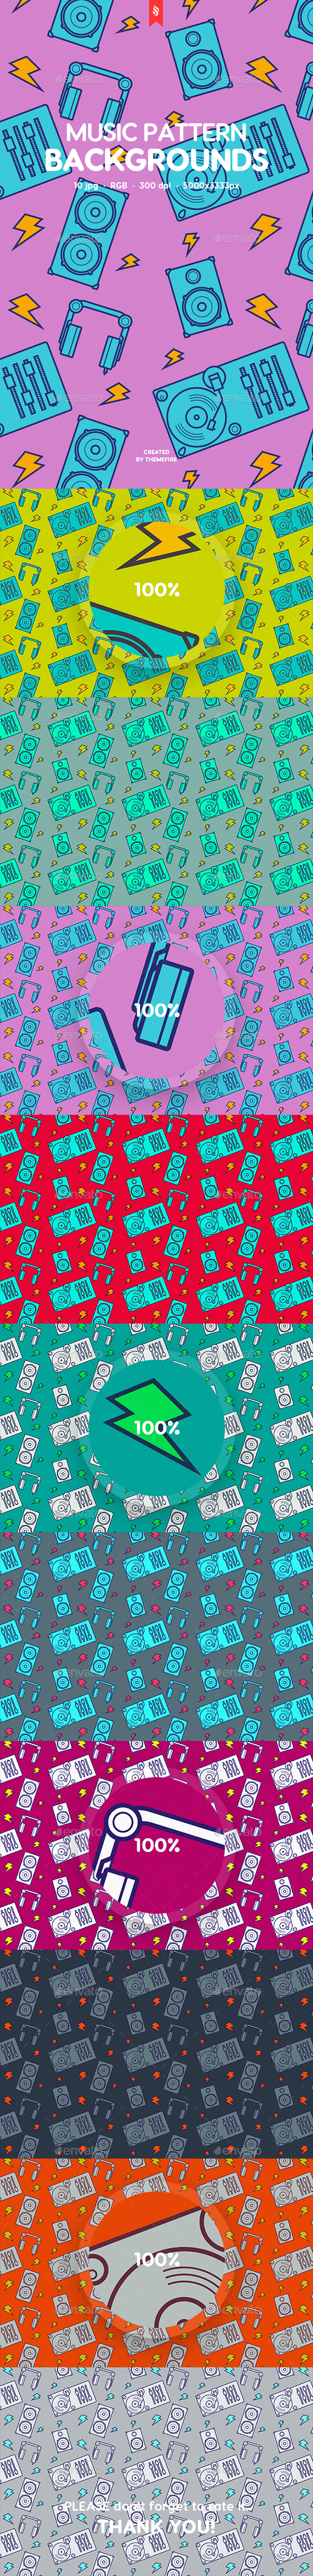 Funny Music Pattern Backgrounds - Patterns Backgrounds